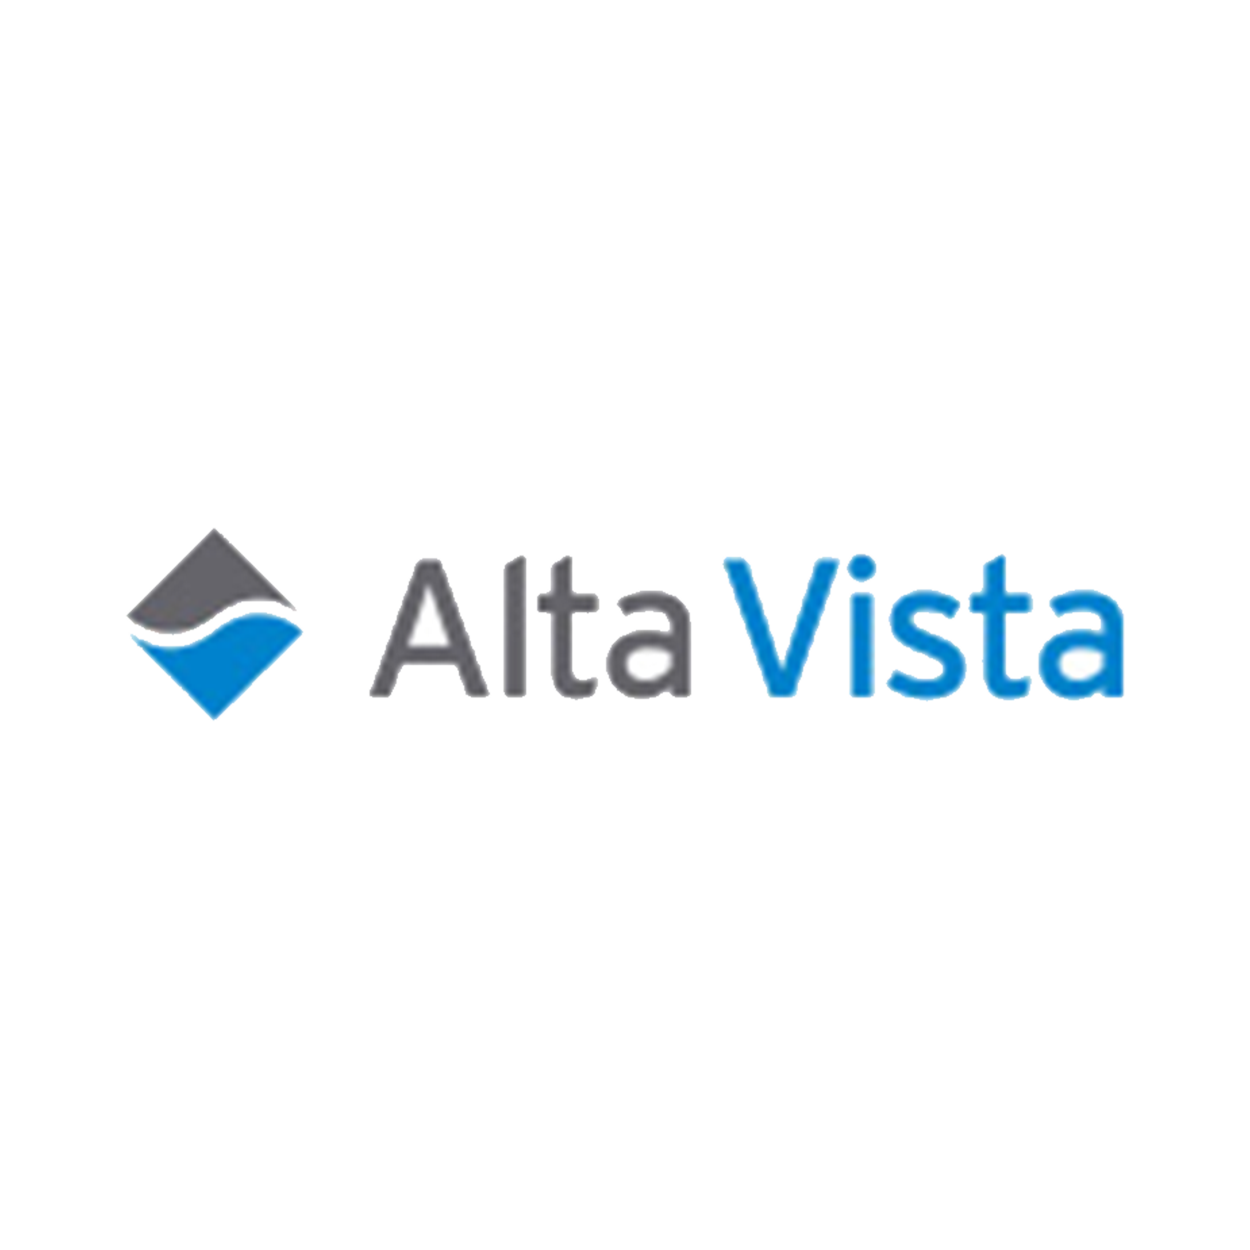 Alta Visa - In support of the company's various projects including the San Francisco Bay Bridge and the California High-Speed rail project, we carefully review the business needs in the organization, effectively analyze both current and projected processes and provide implementation, training and support services to end users and in Microsoft Office 365, Customer Relationship Management, Enterprise Resource Management, Team communication and collaboration, computer imaging, migrations and rollouts.  In addition to providing all network design services provided all structured cabling installations for 8 new offices.